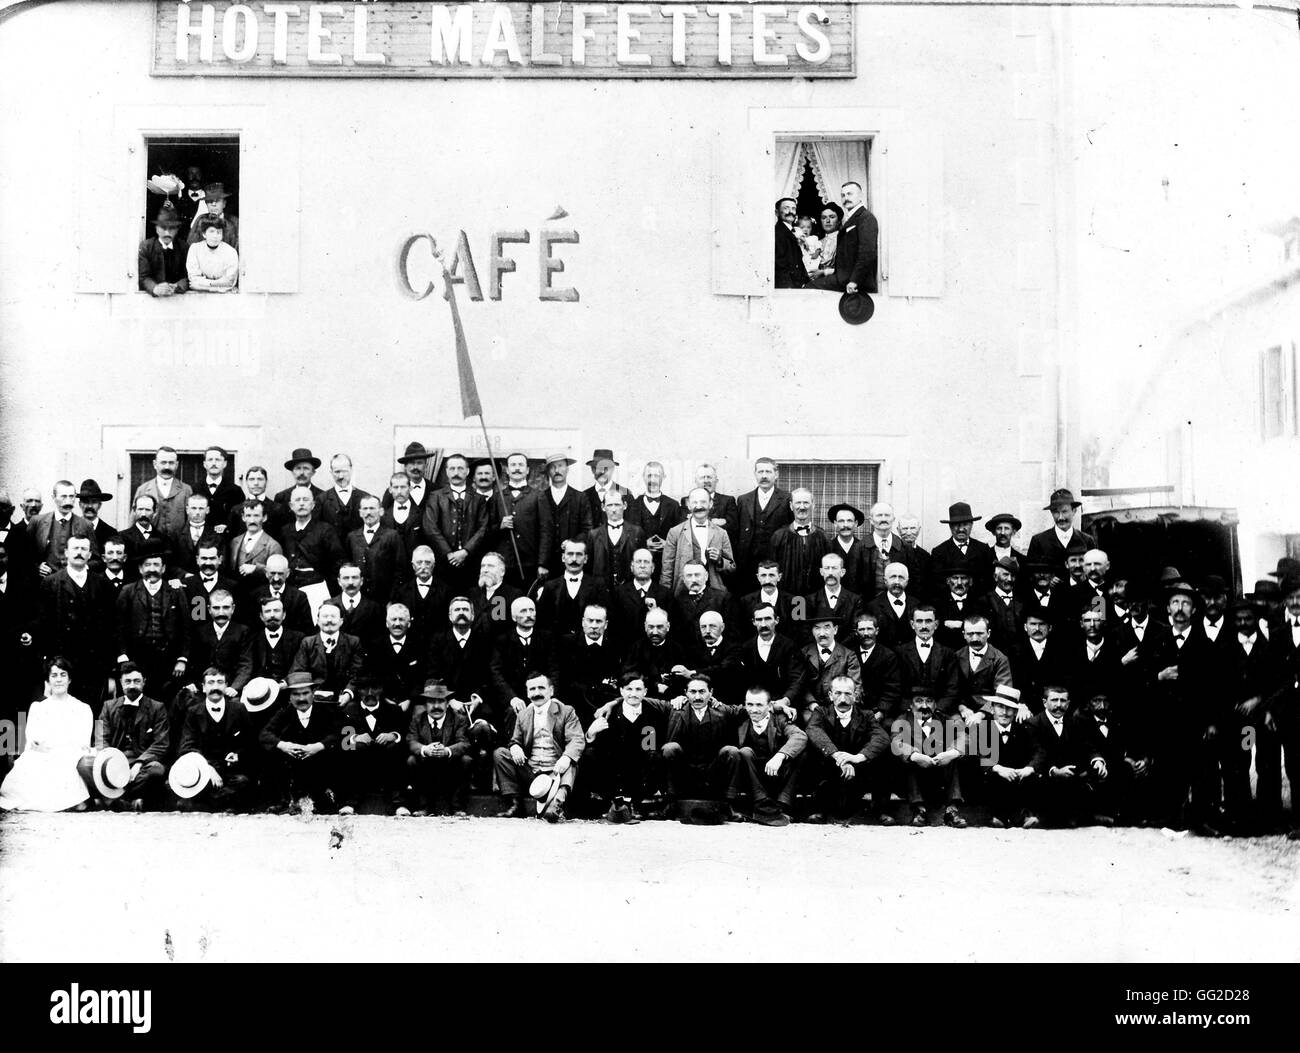 Jaurès and the socialists from a French village called Pampelone 1910 France - Stock Image